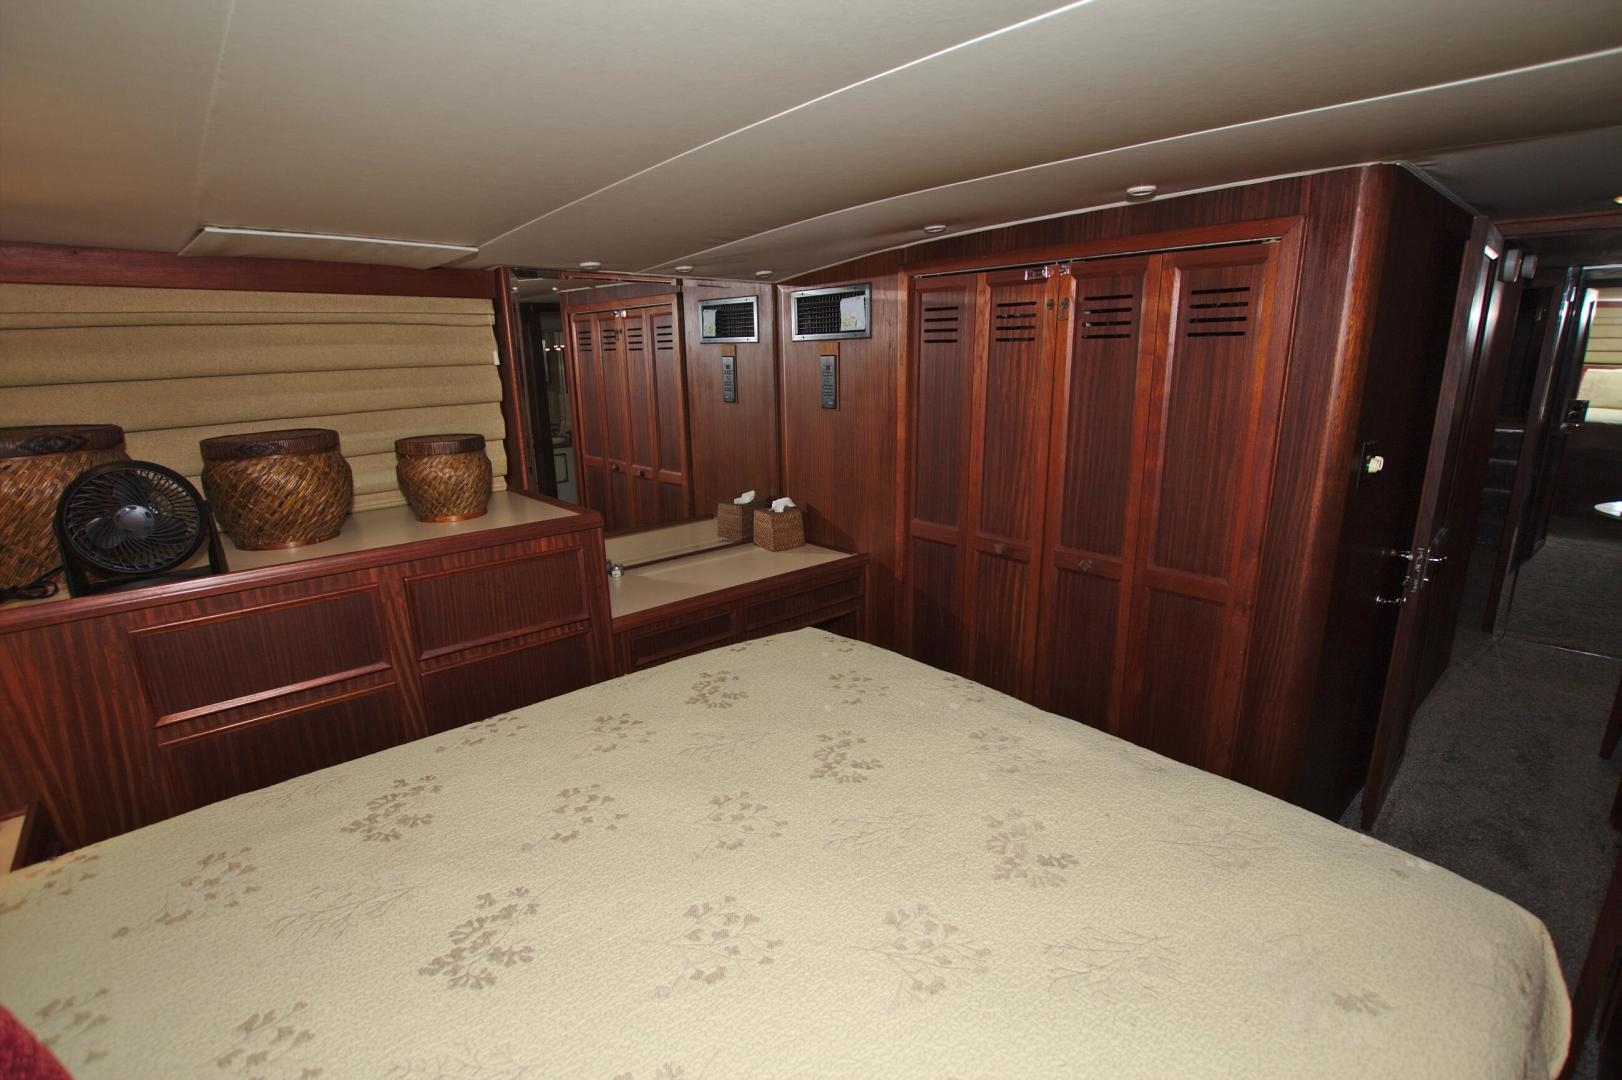 Hatteras-53 Extended Deckhouse Motor Yacht 1983-Luv Options Palmetto-Florida-United States-1513032 | Thumbnail